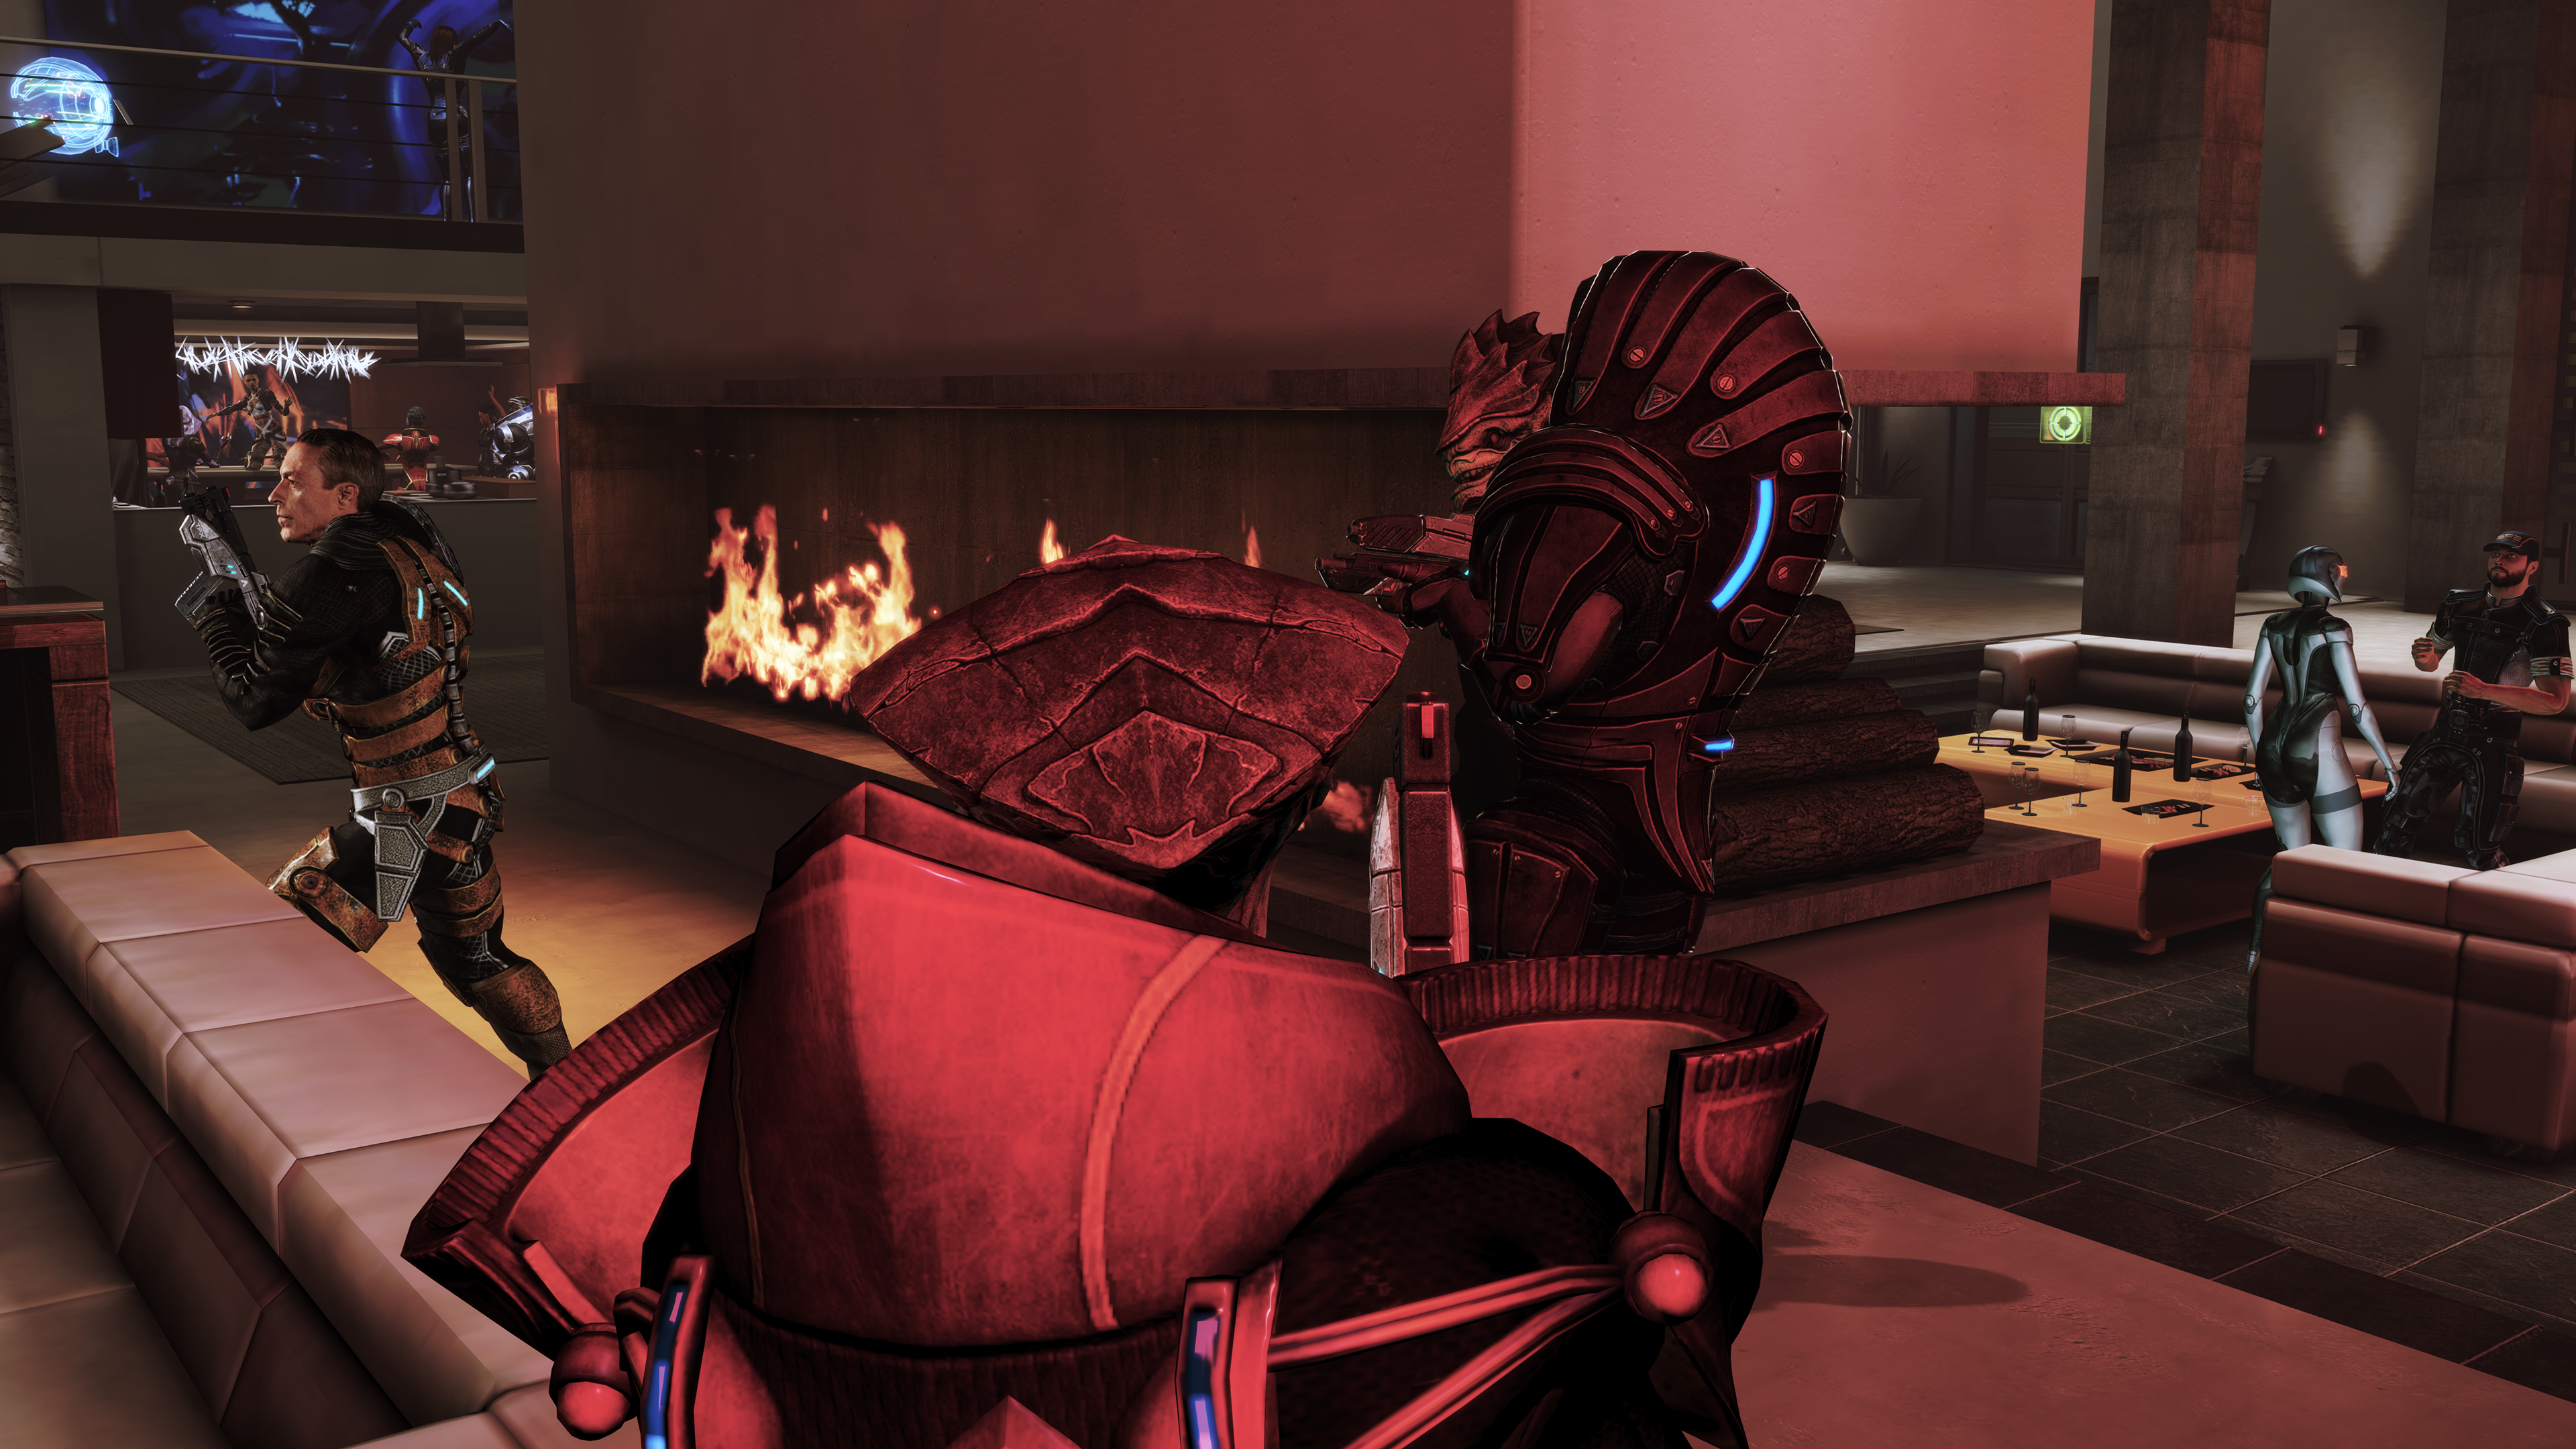 Mass effect 3 hook up with james